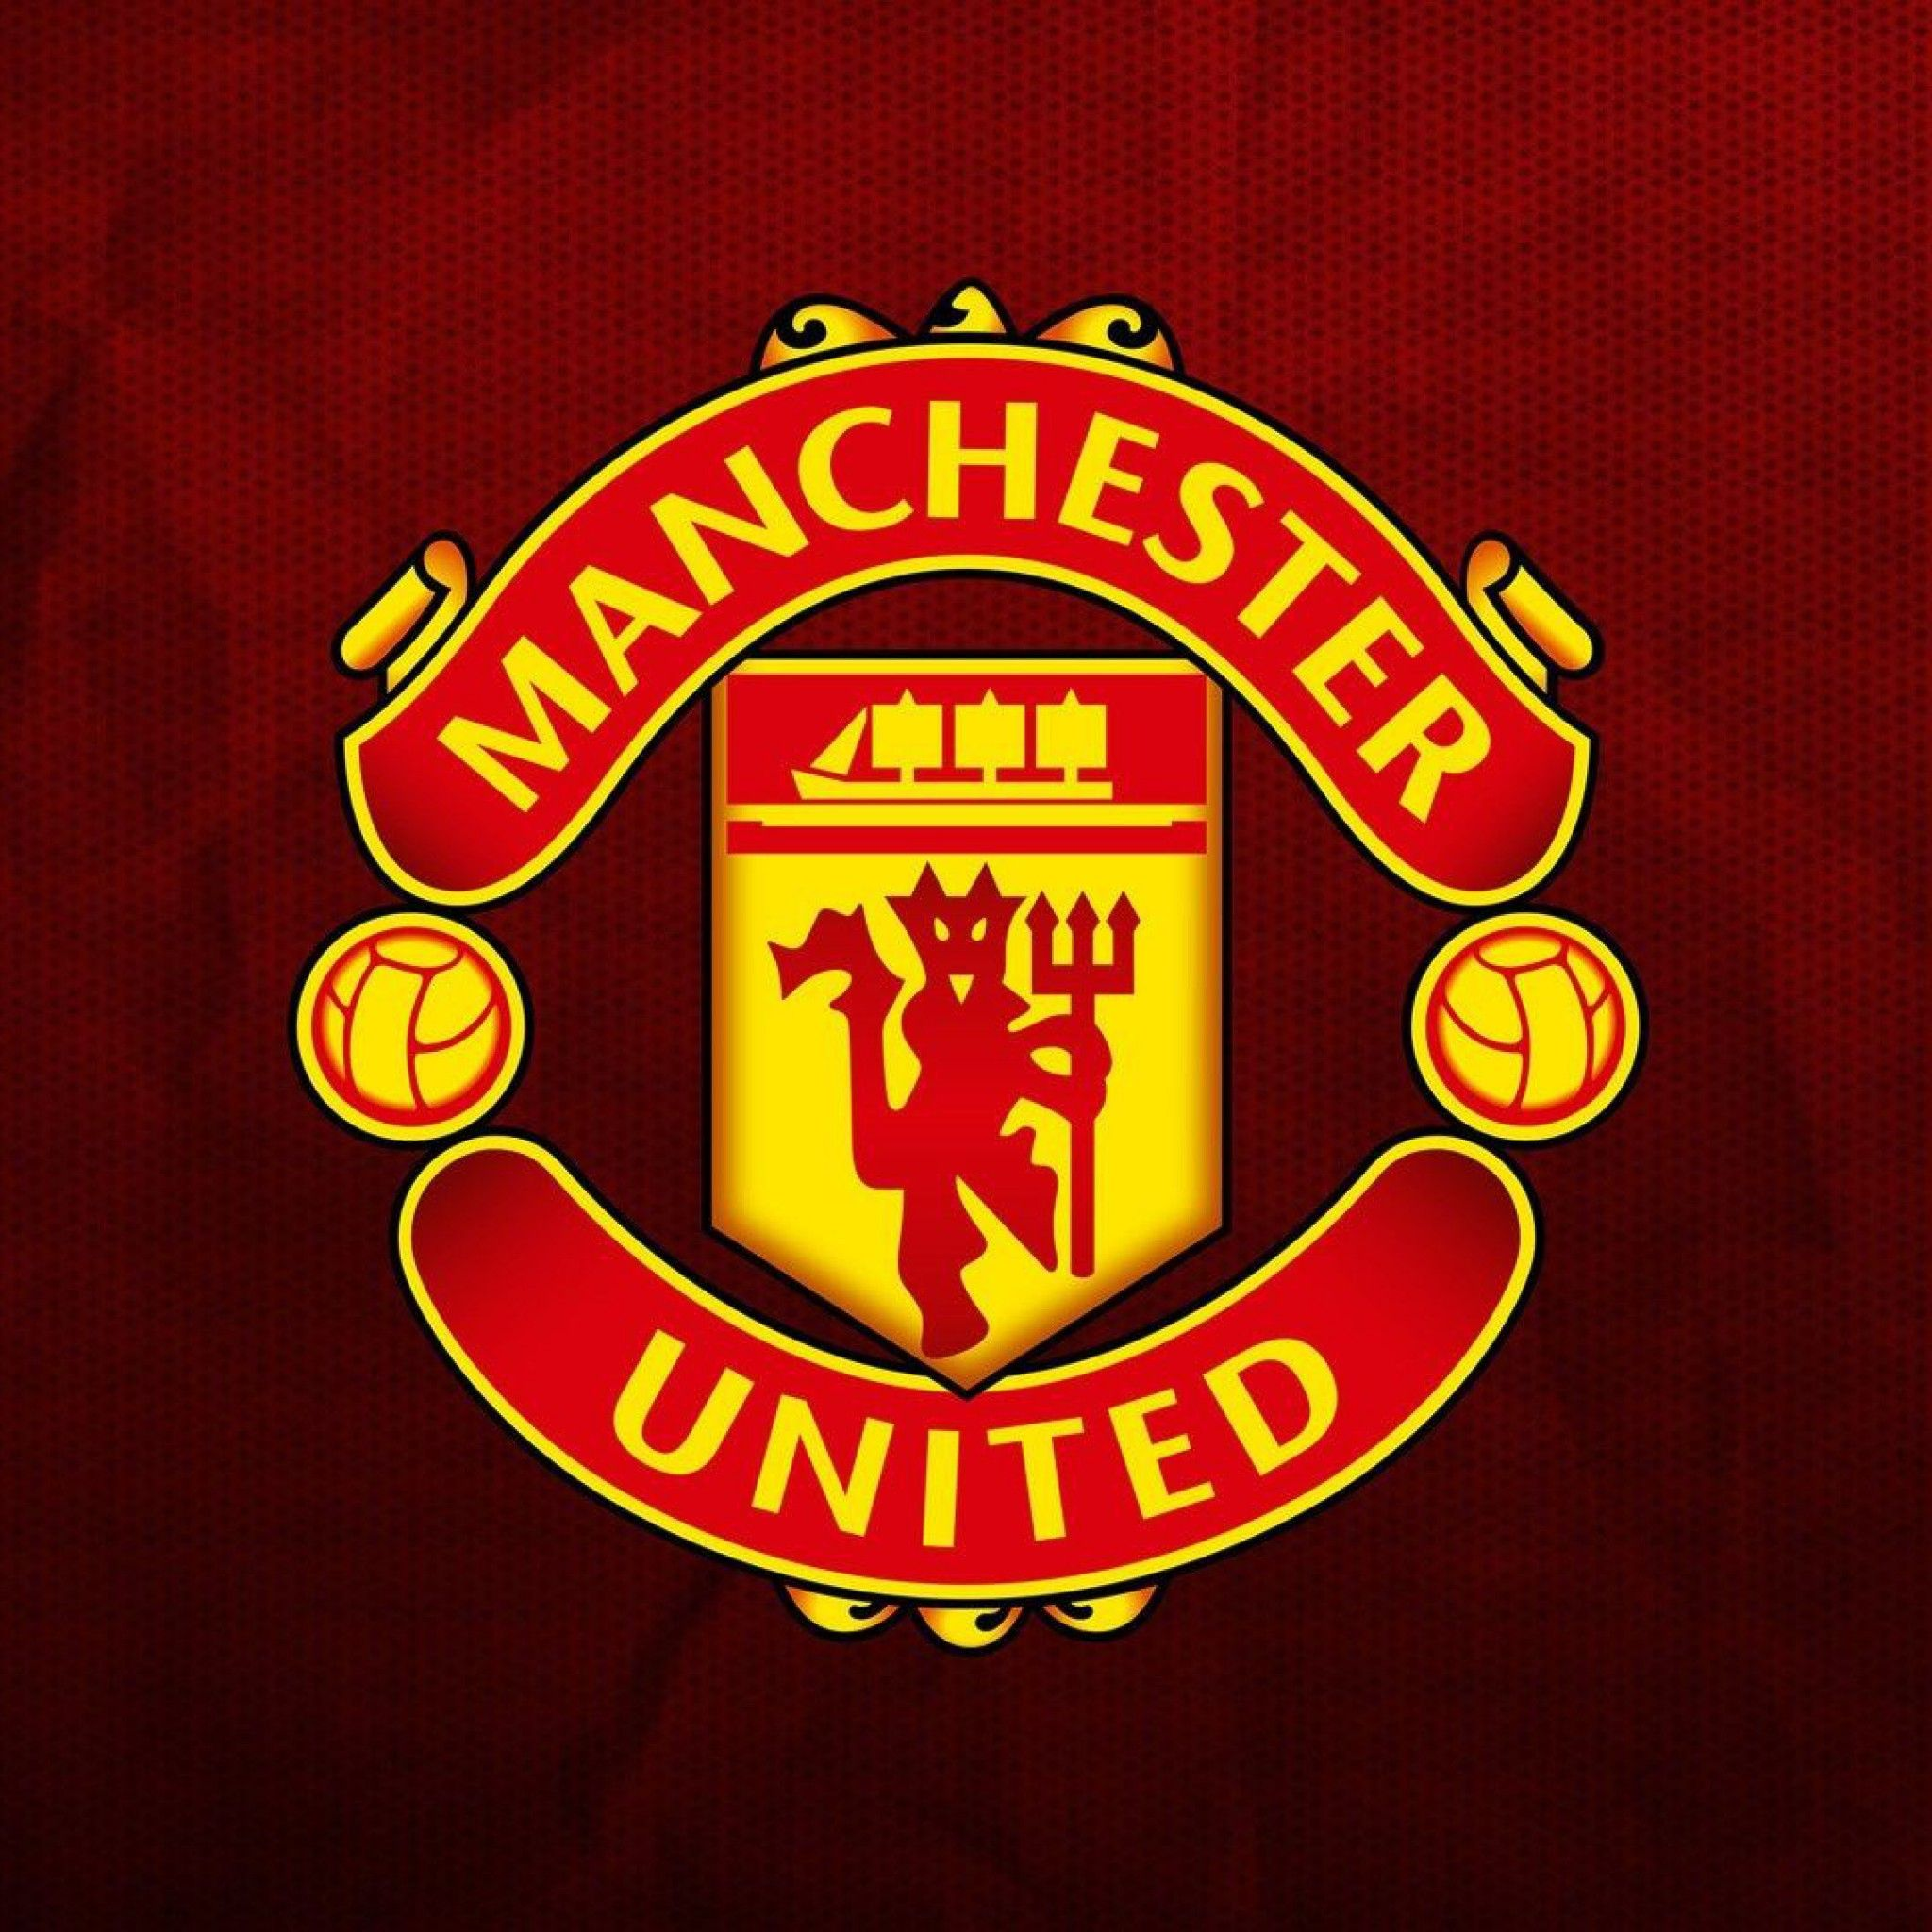 Manchester United Wallpaper Manchester United Logo Manchester